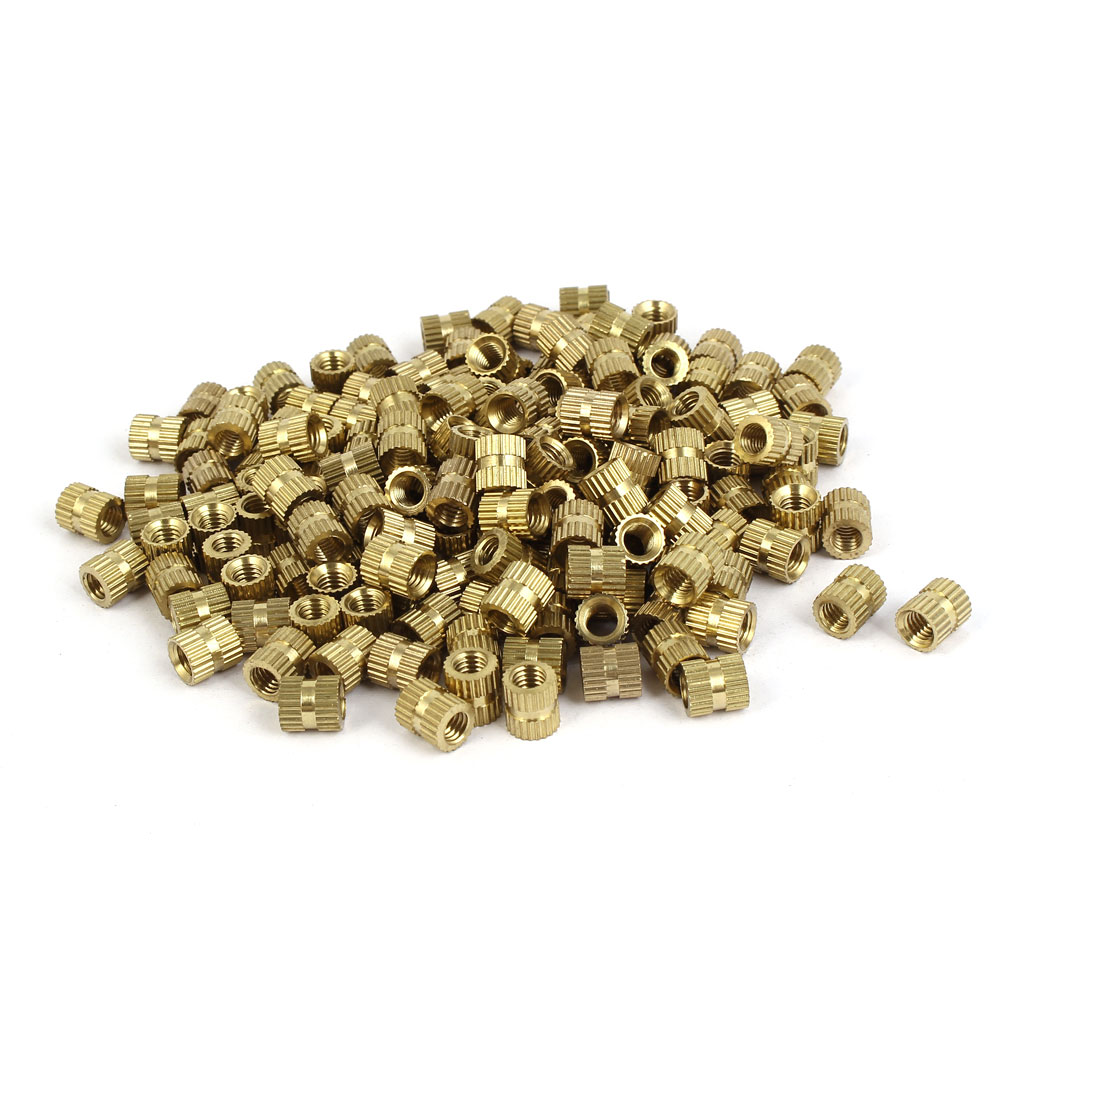 M5 x 8mm Brass Cylindrical Knurled Threaded Round Insert Embedded Nuts 200PCS